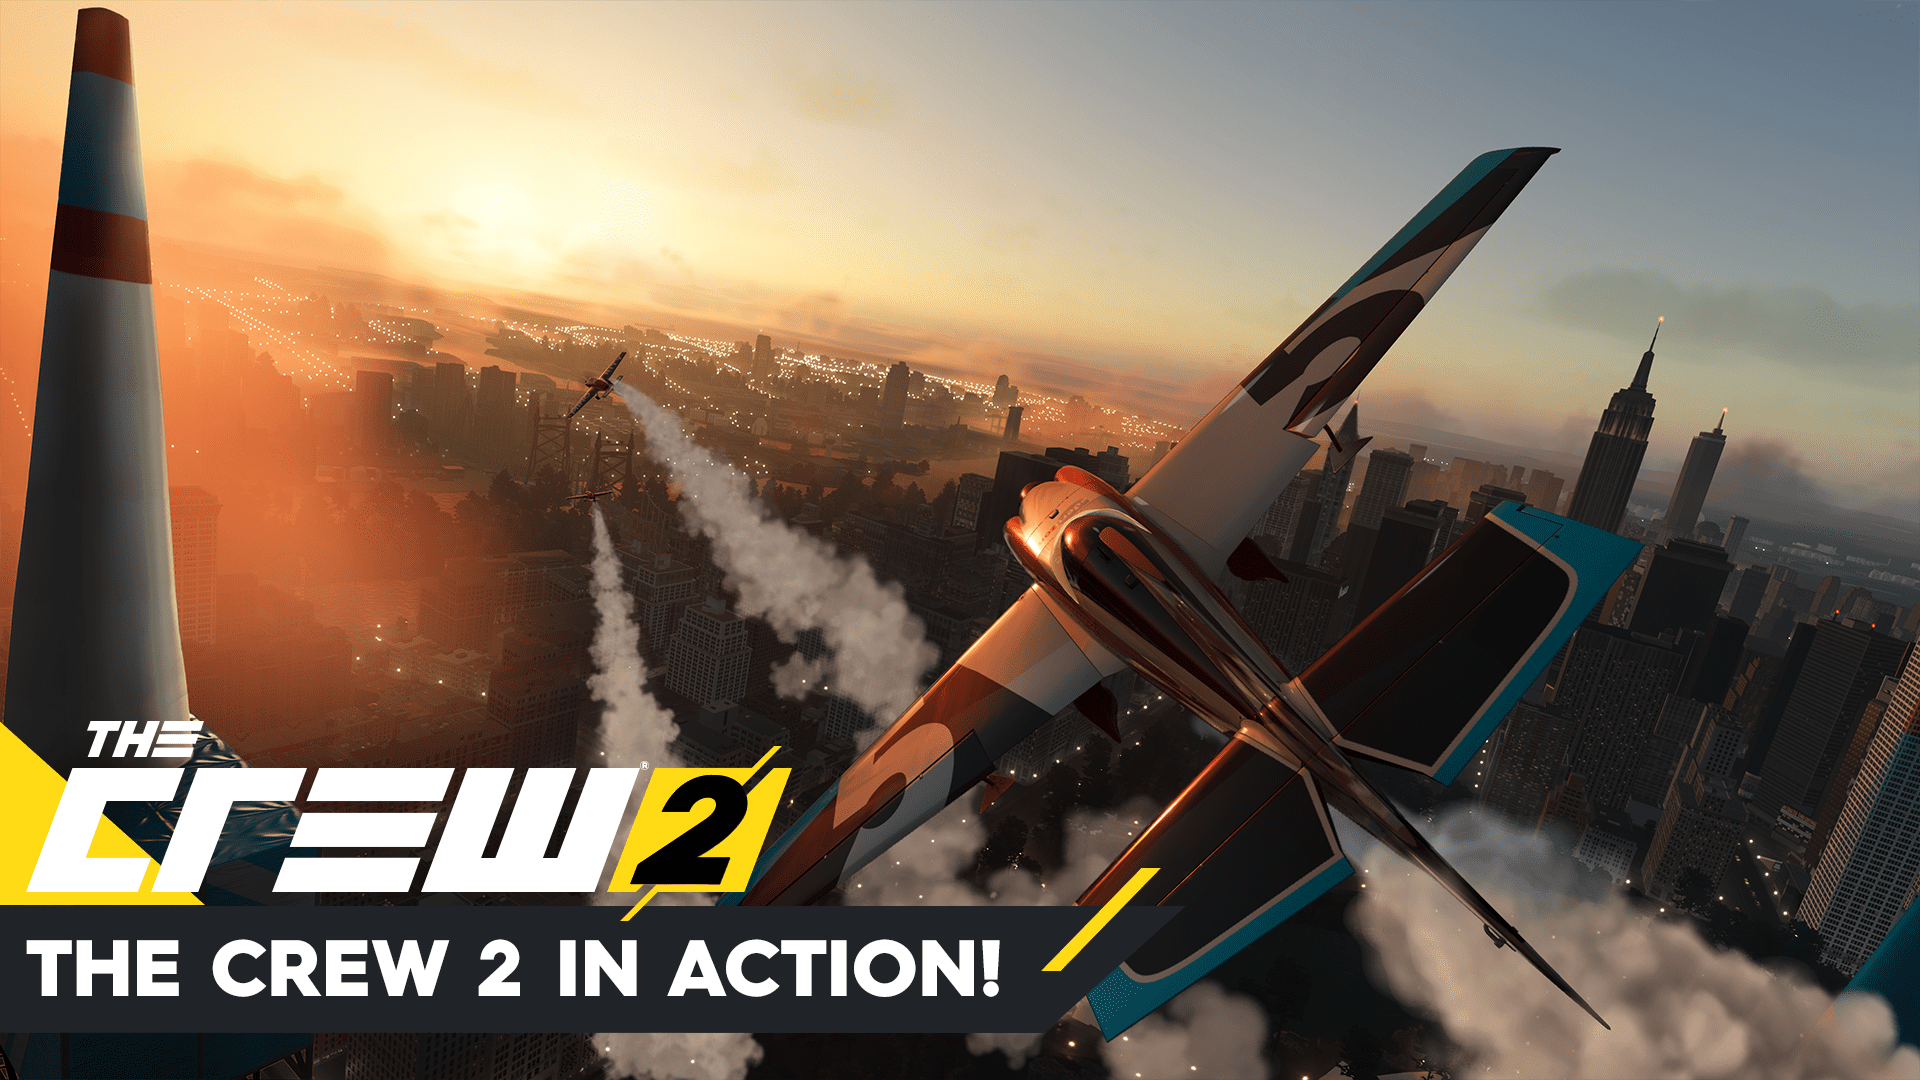 The Crew 2 Game